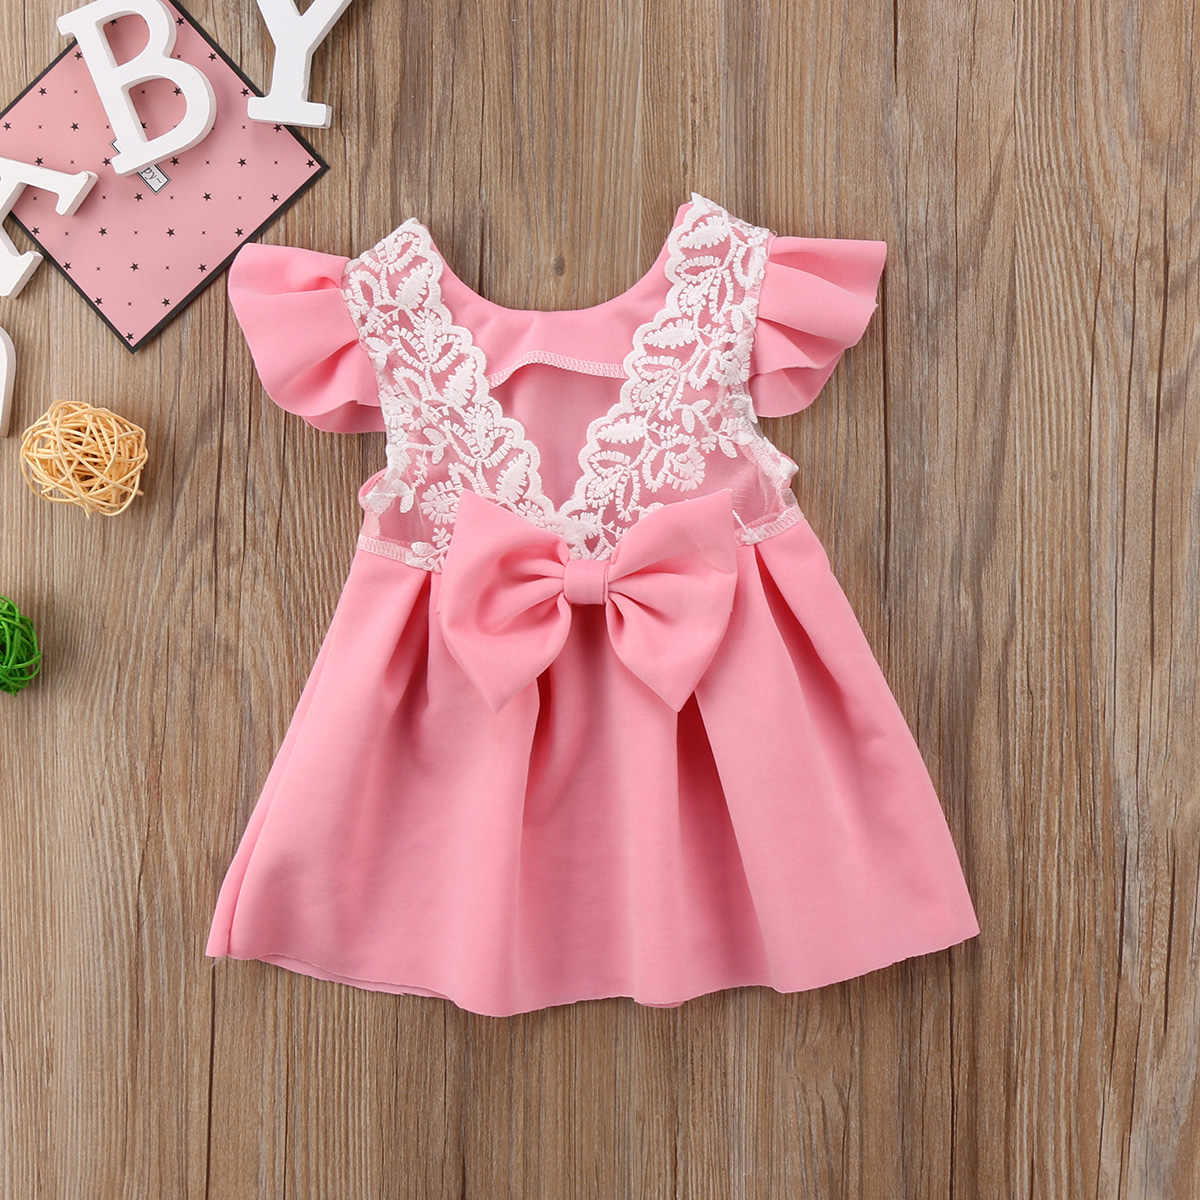 c4cb71ab9dbb6 Detail Feedback Questions about Pudcoco Baby Girls Dress Toddler ...